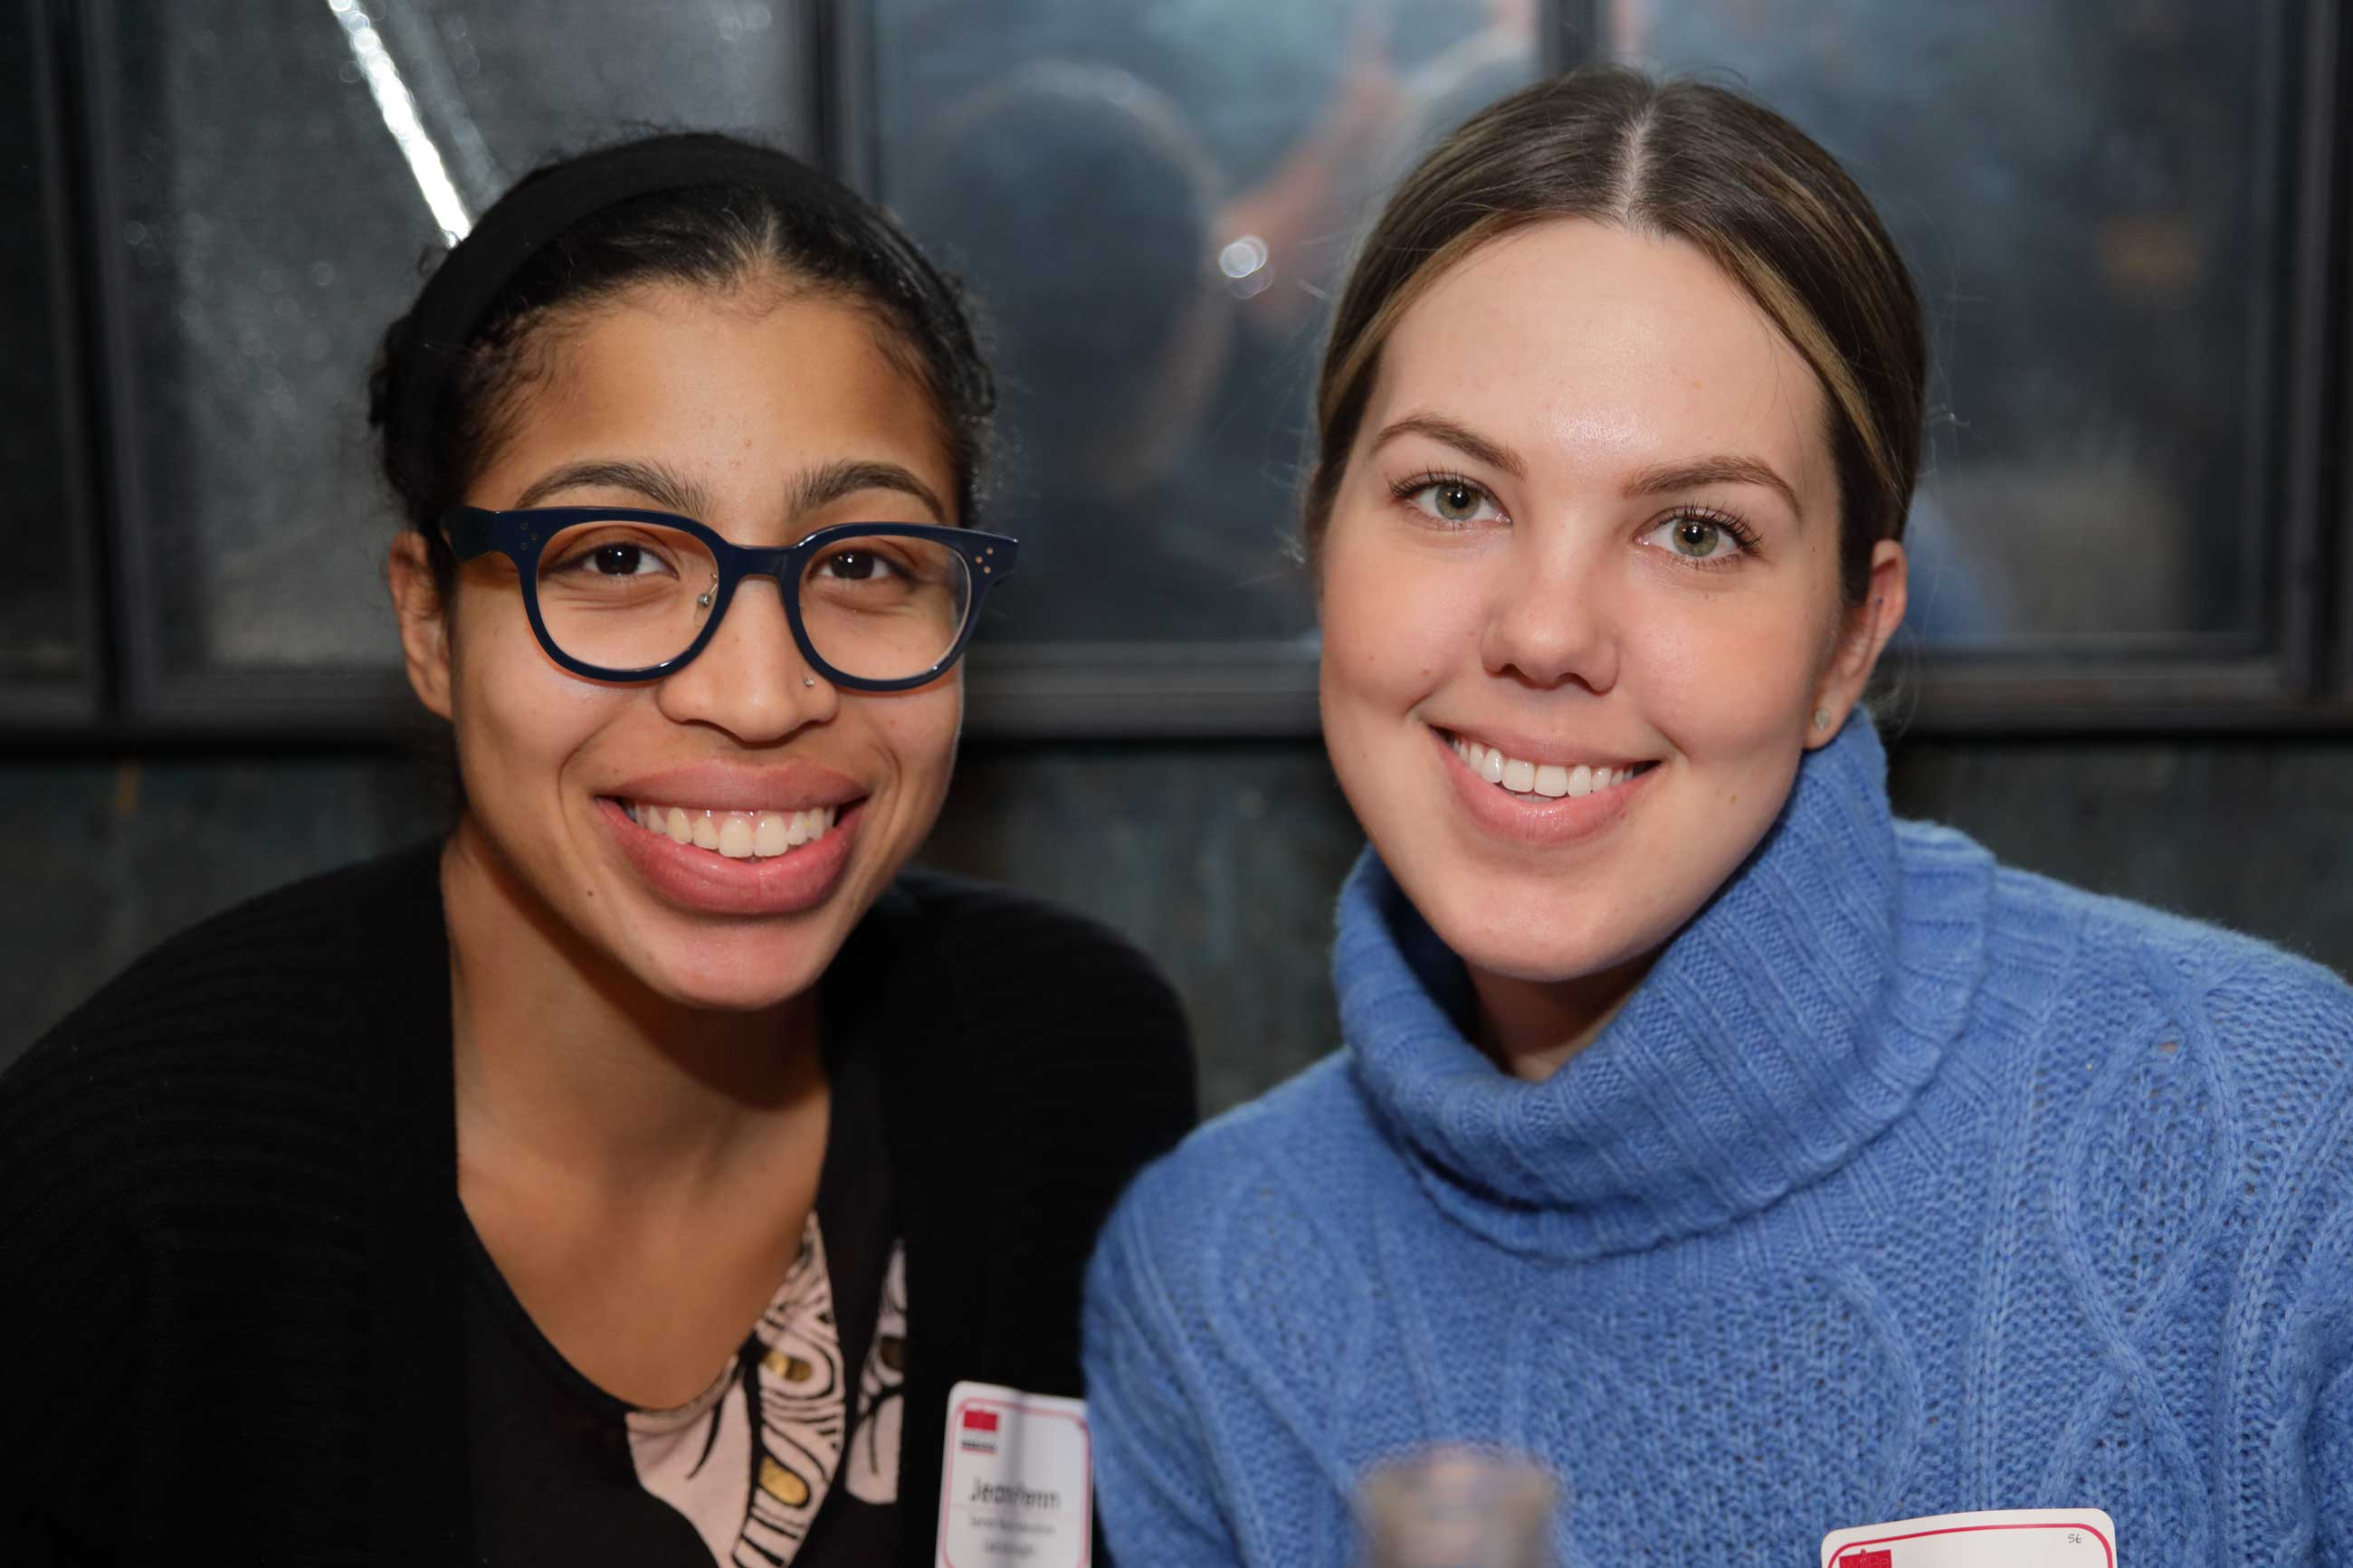 Two women smiling at a Women in Research event